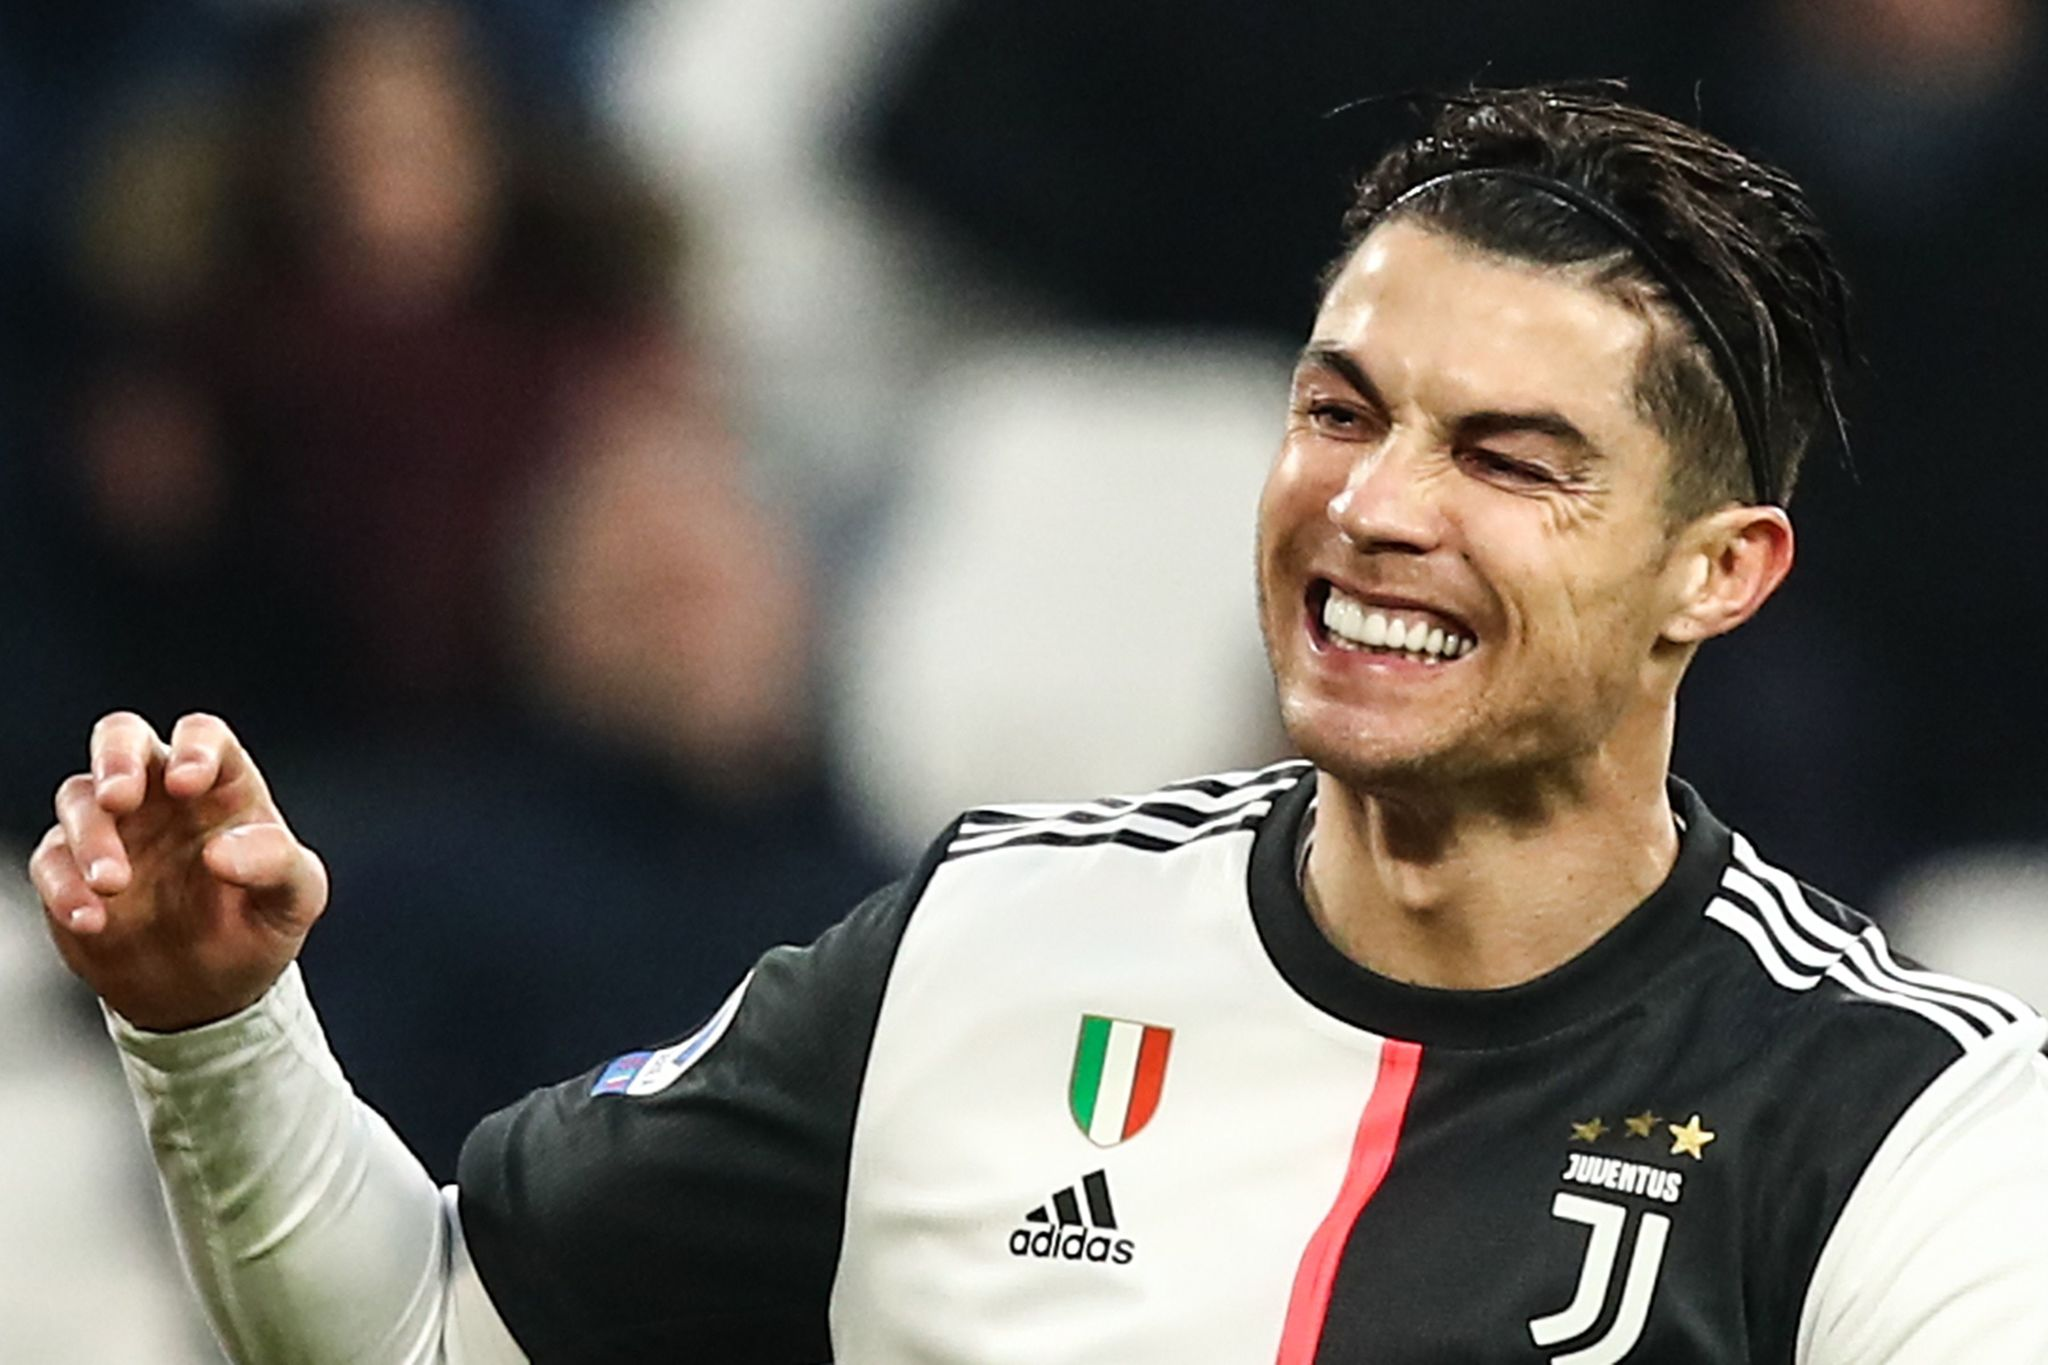 Juventus Portuguese forward <HIT>Cristiano</HIT> Ronaldo reacts during the Italian Serie A football match Juventus vs Udinese on December 15, 2019 at the Juventus Allianz stadium in Turin. (Photo by Isabella BONOTTO / AFP)